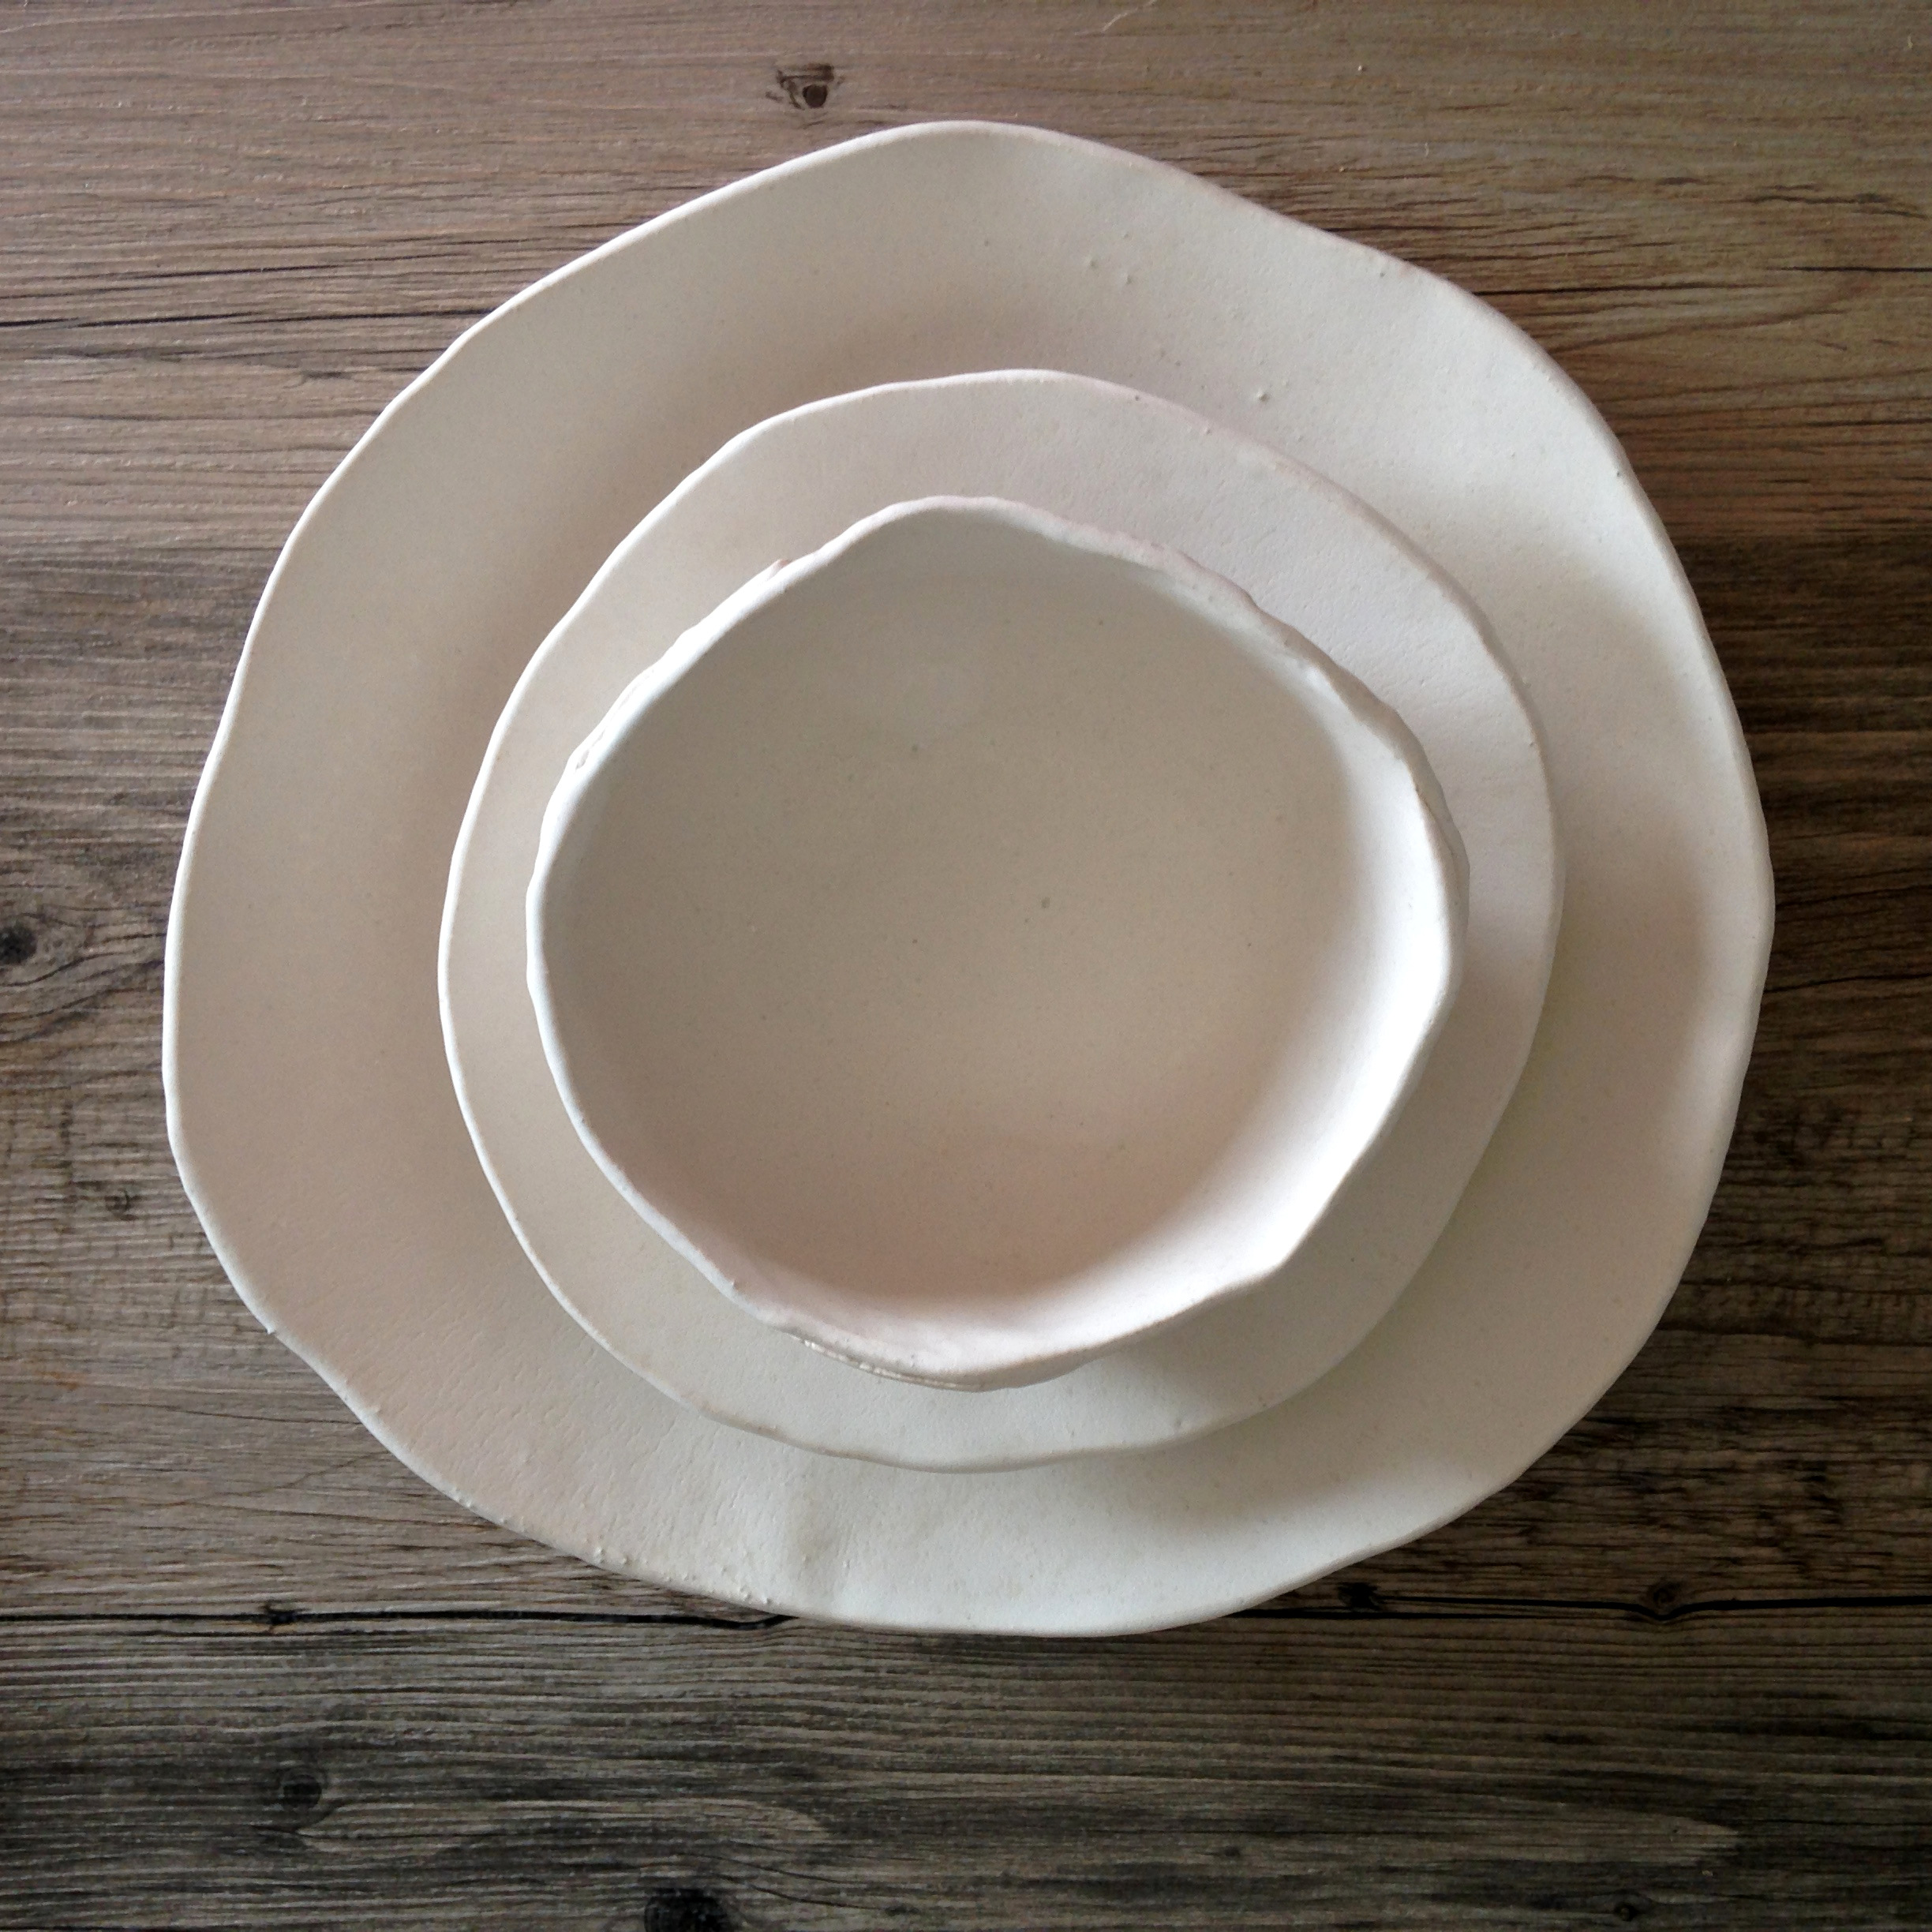 White ceramic plate set - silky white glaze on a white clay body - summer cool ... & Plates